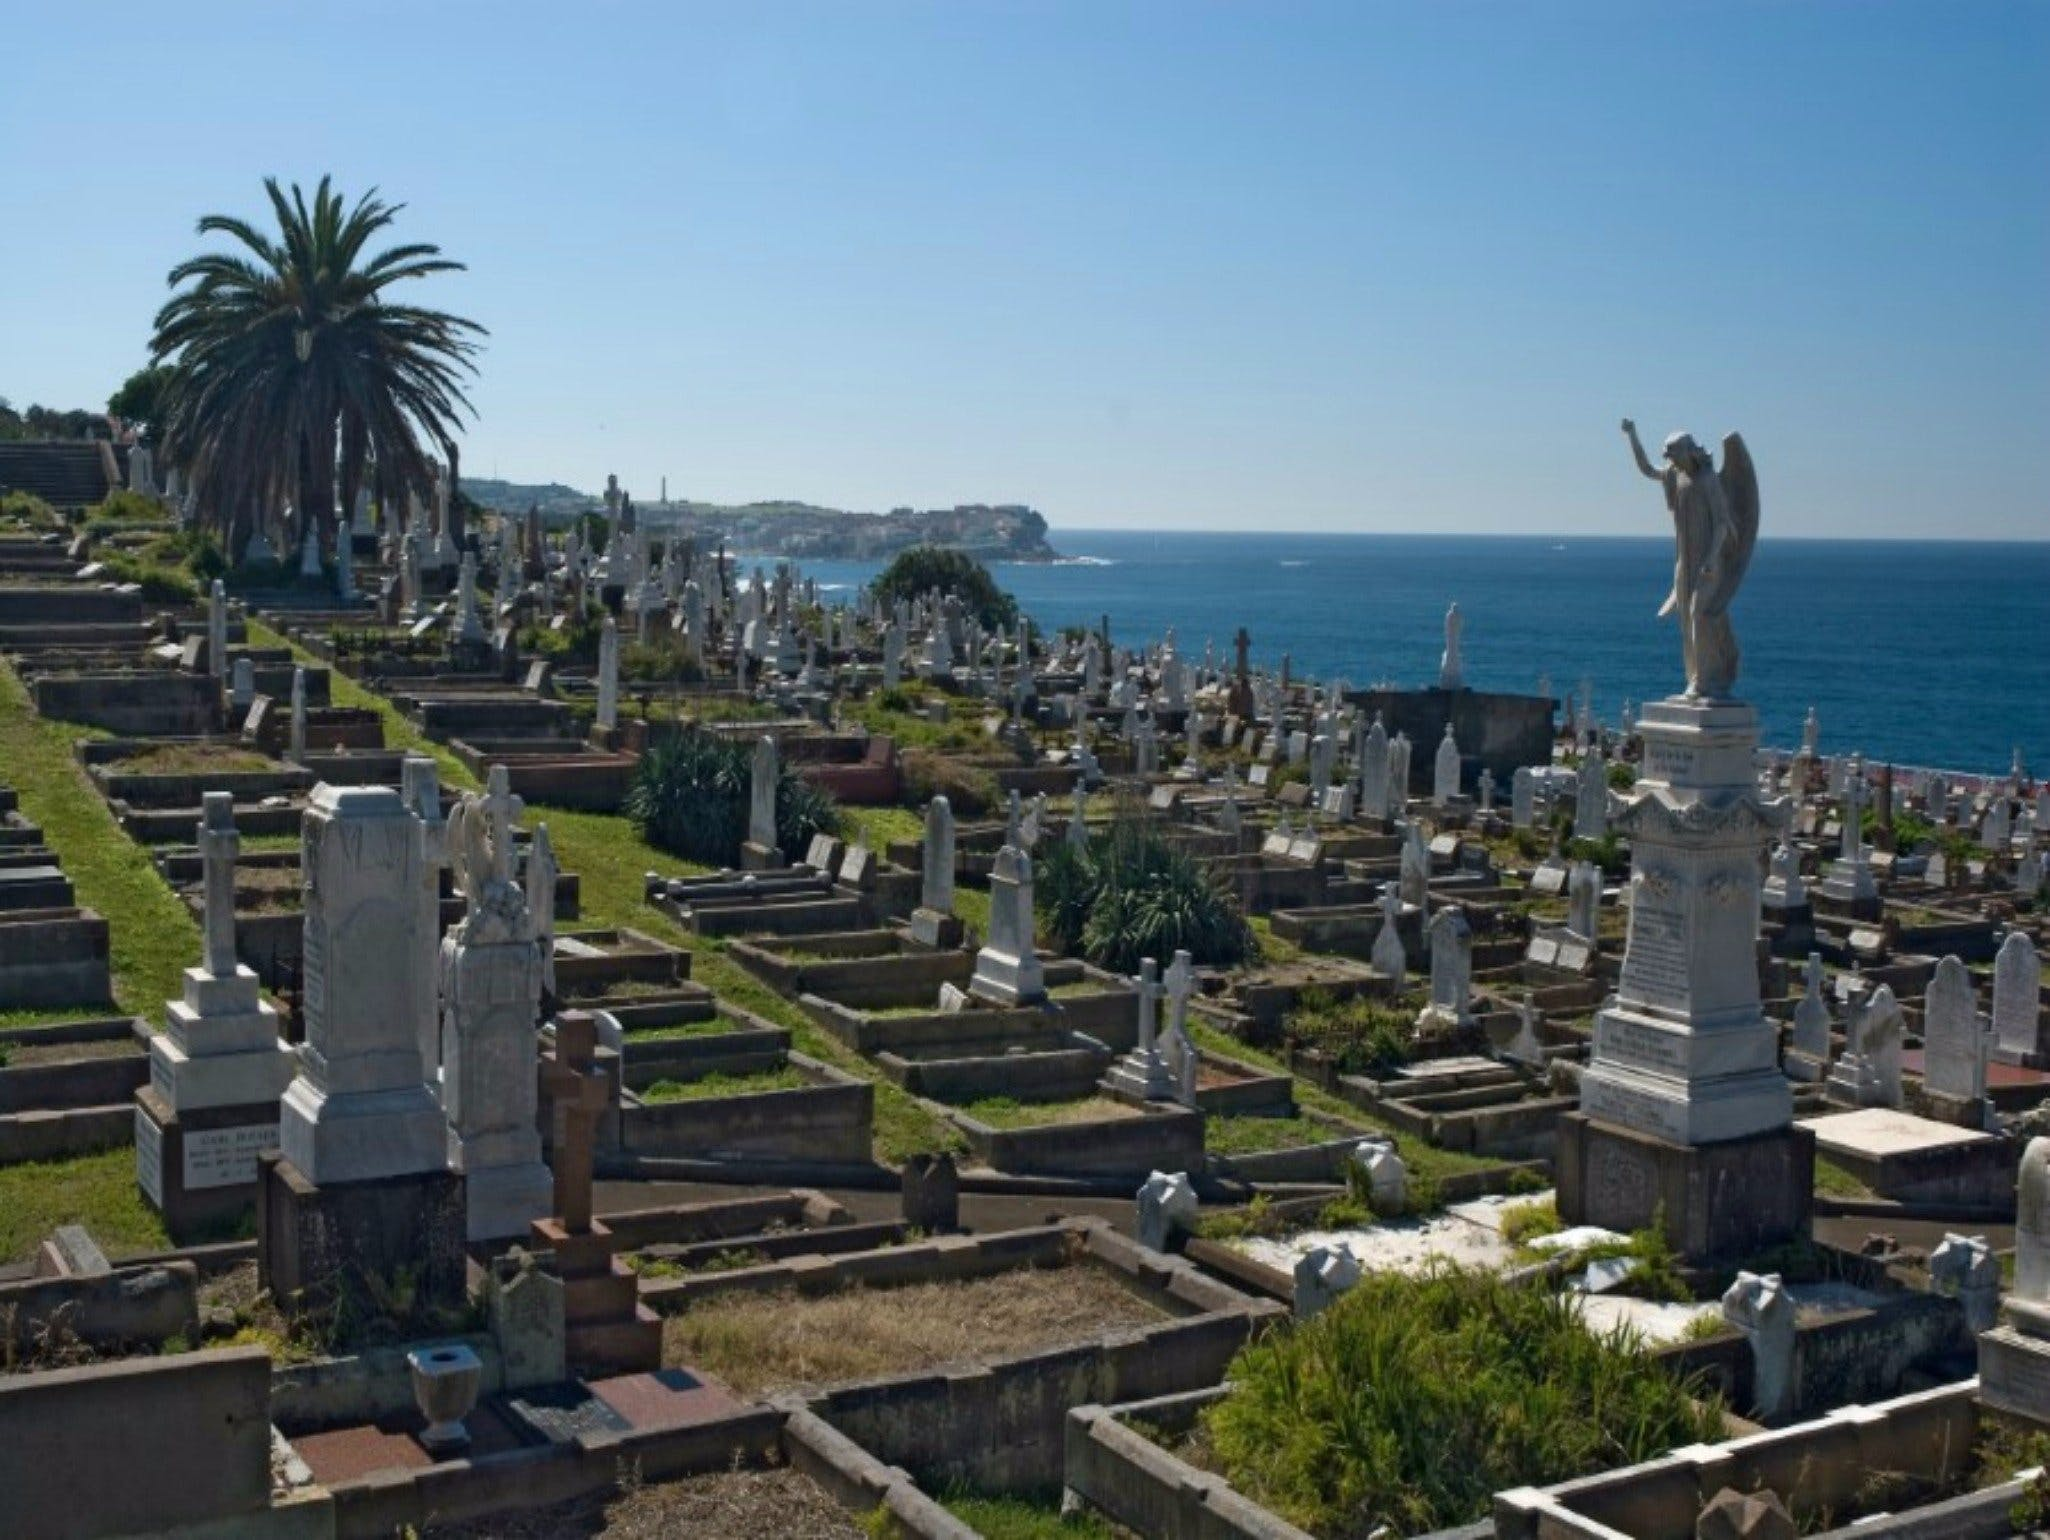 Waverley Cemetery - Accommodation Sunshine Coast